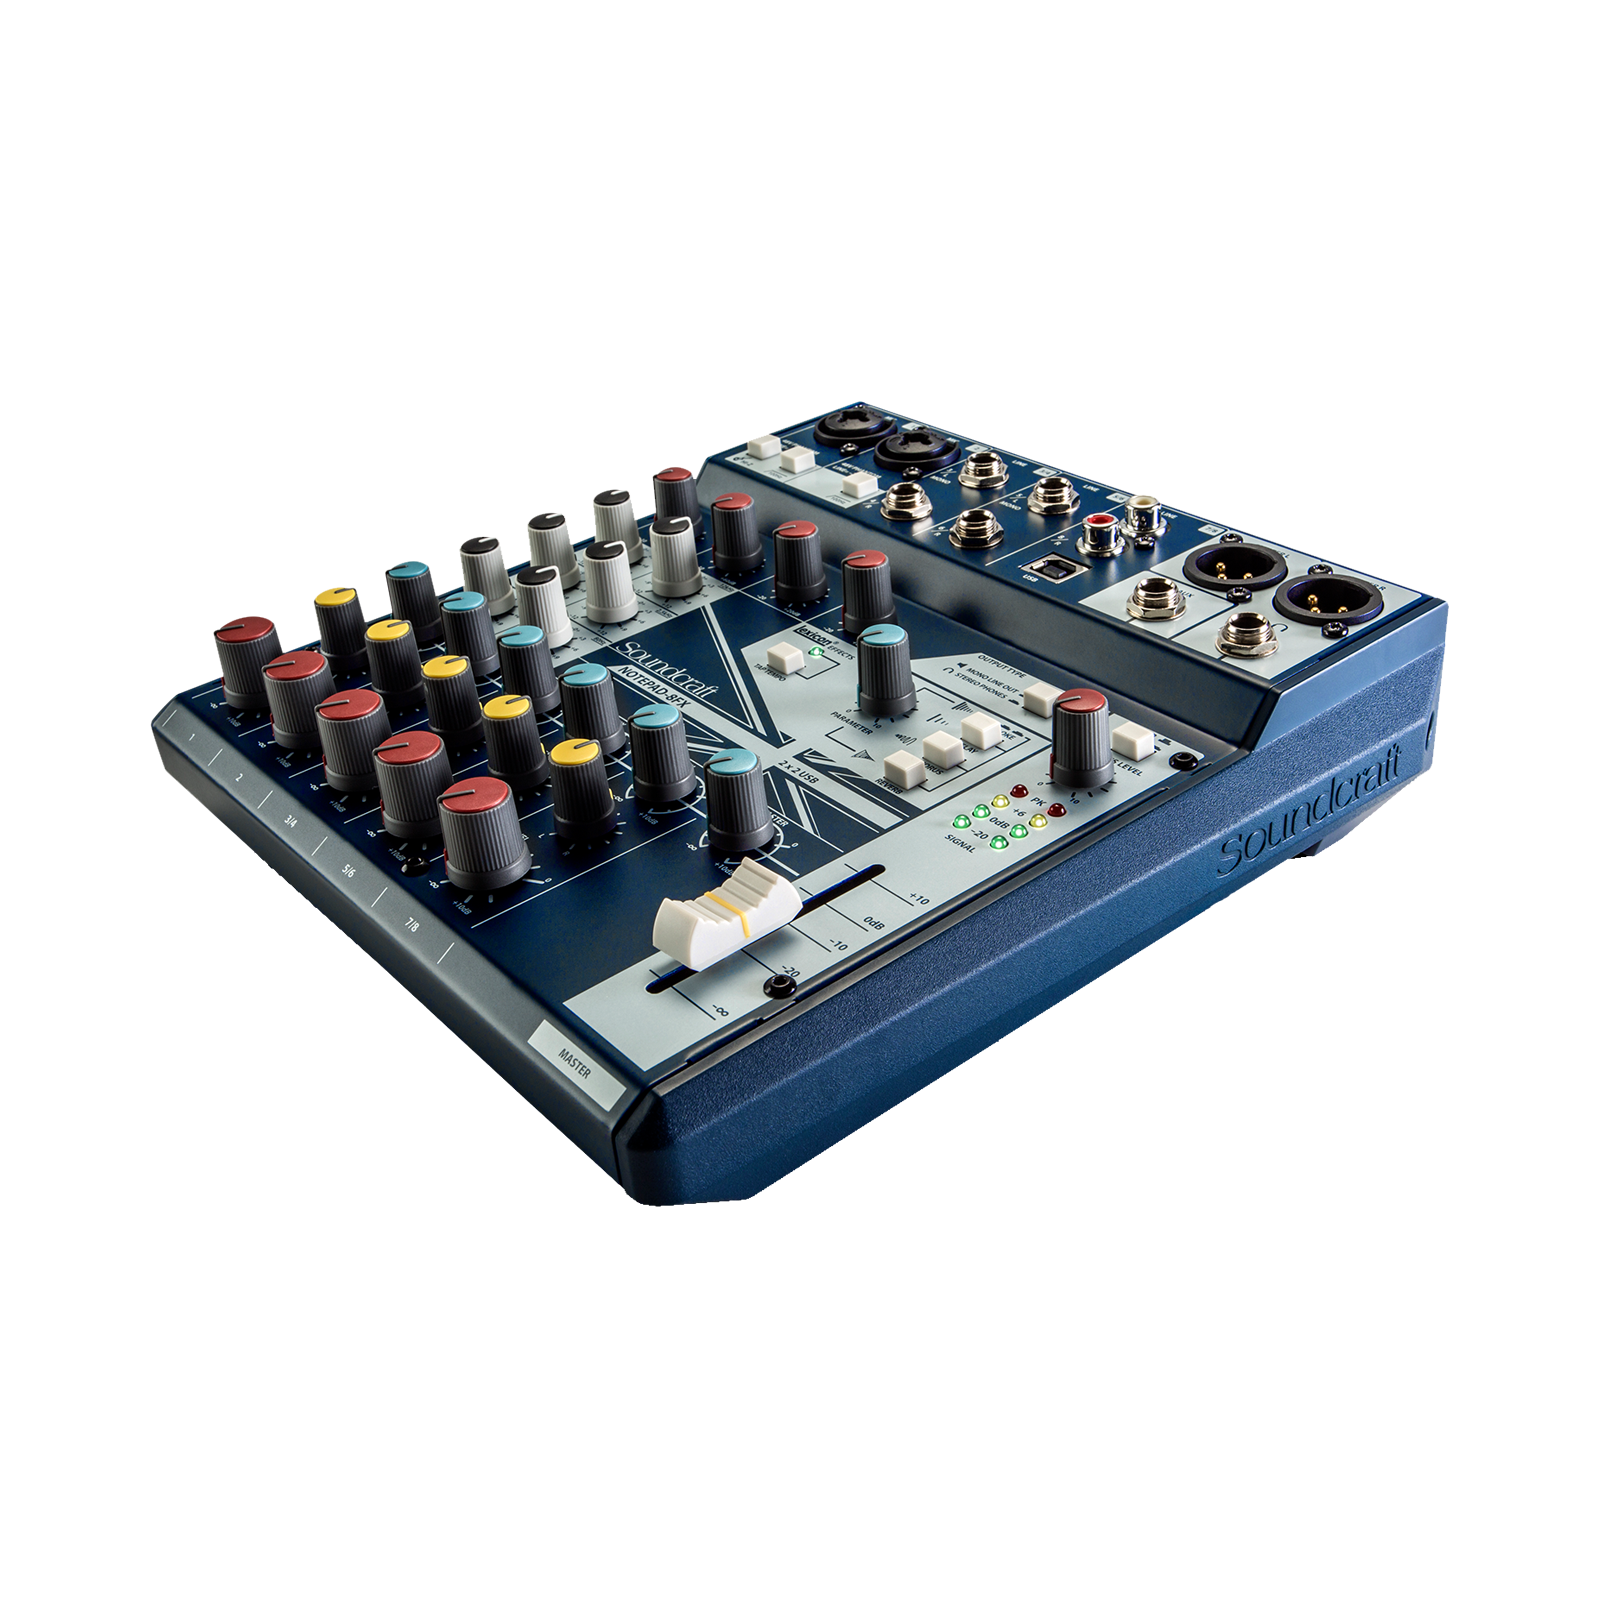 Notepad-8FX - Dark Blue - Small-format analog mixing console with USB I/O and Lexicon effects - Detailshot 1